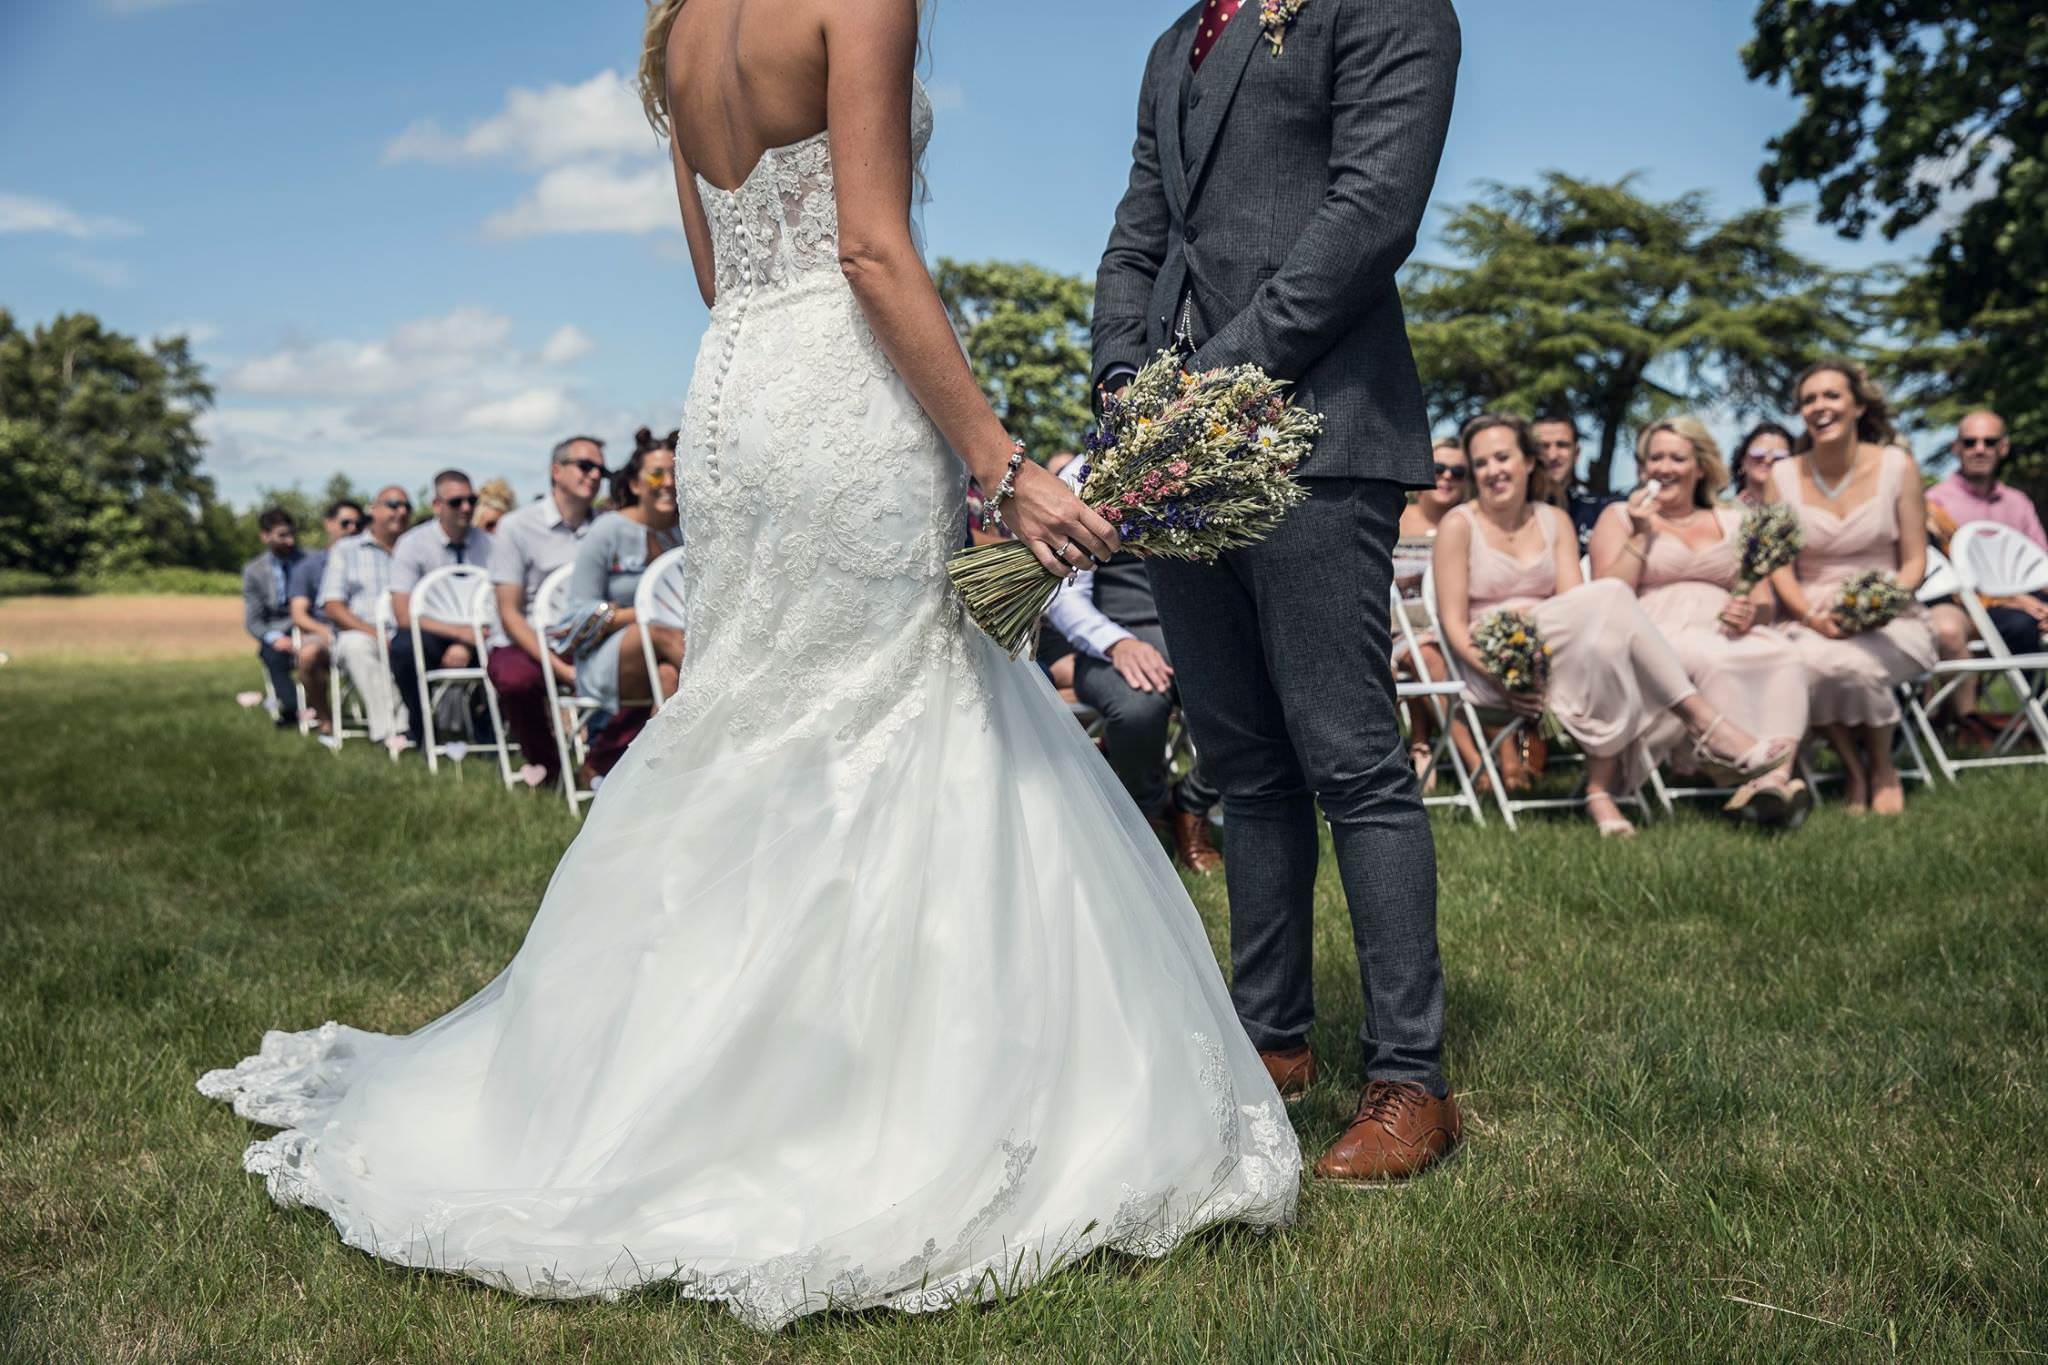 bride and groom at their outdoor ceremony